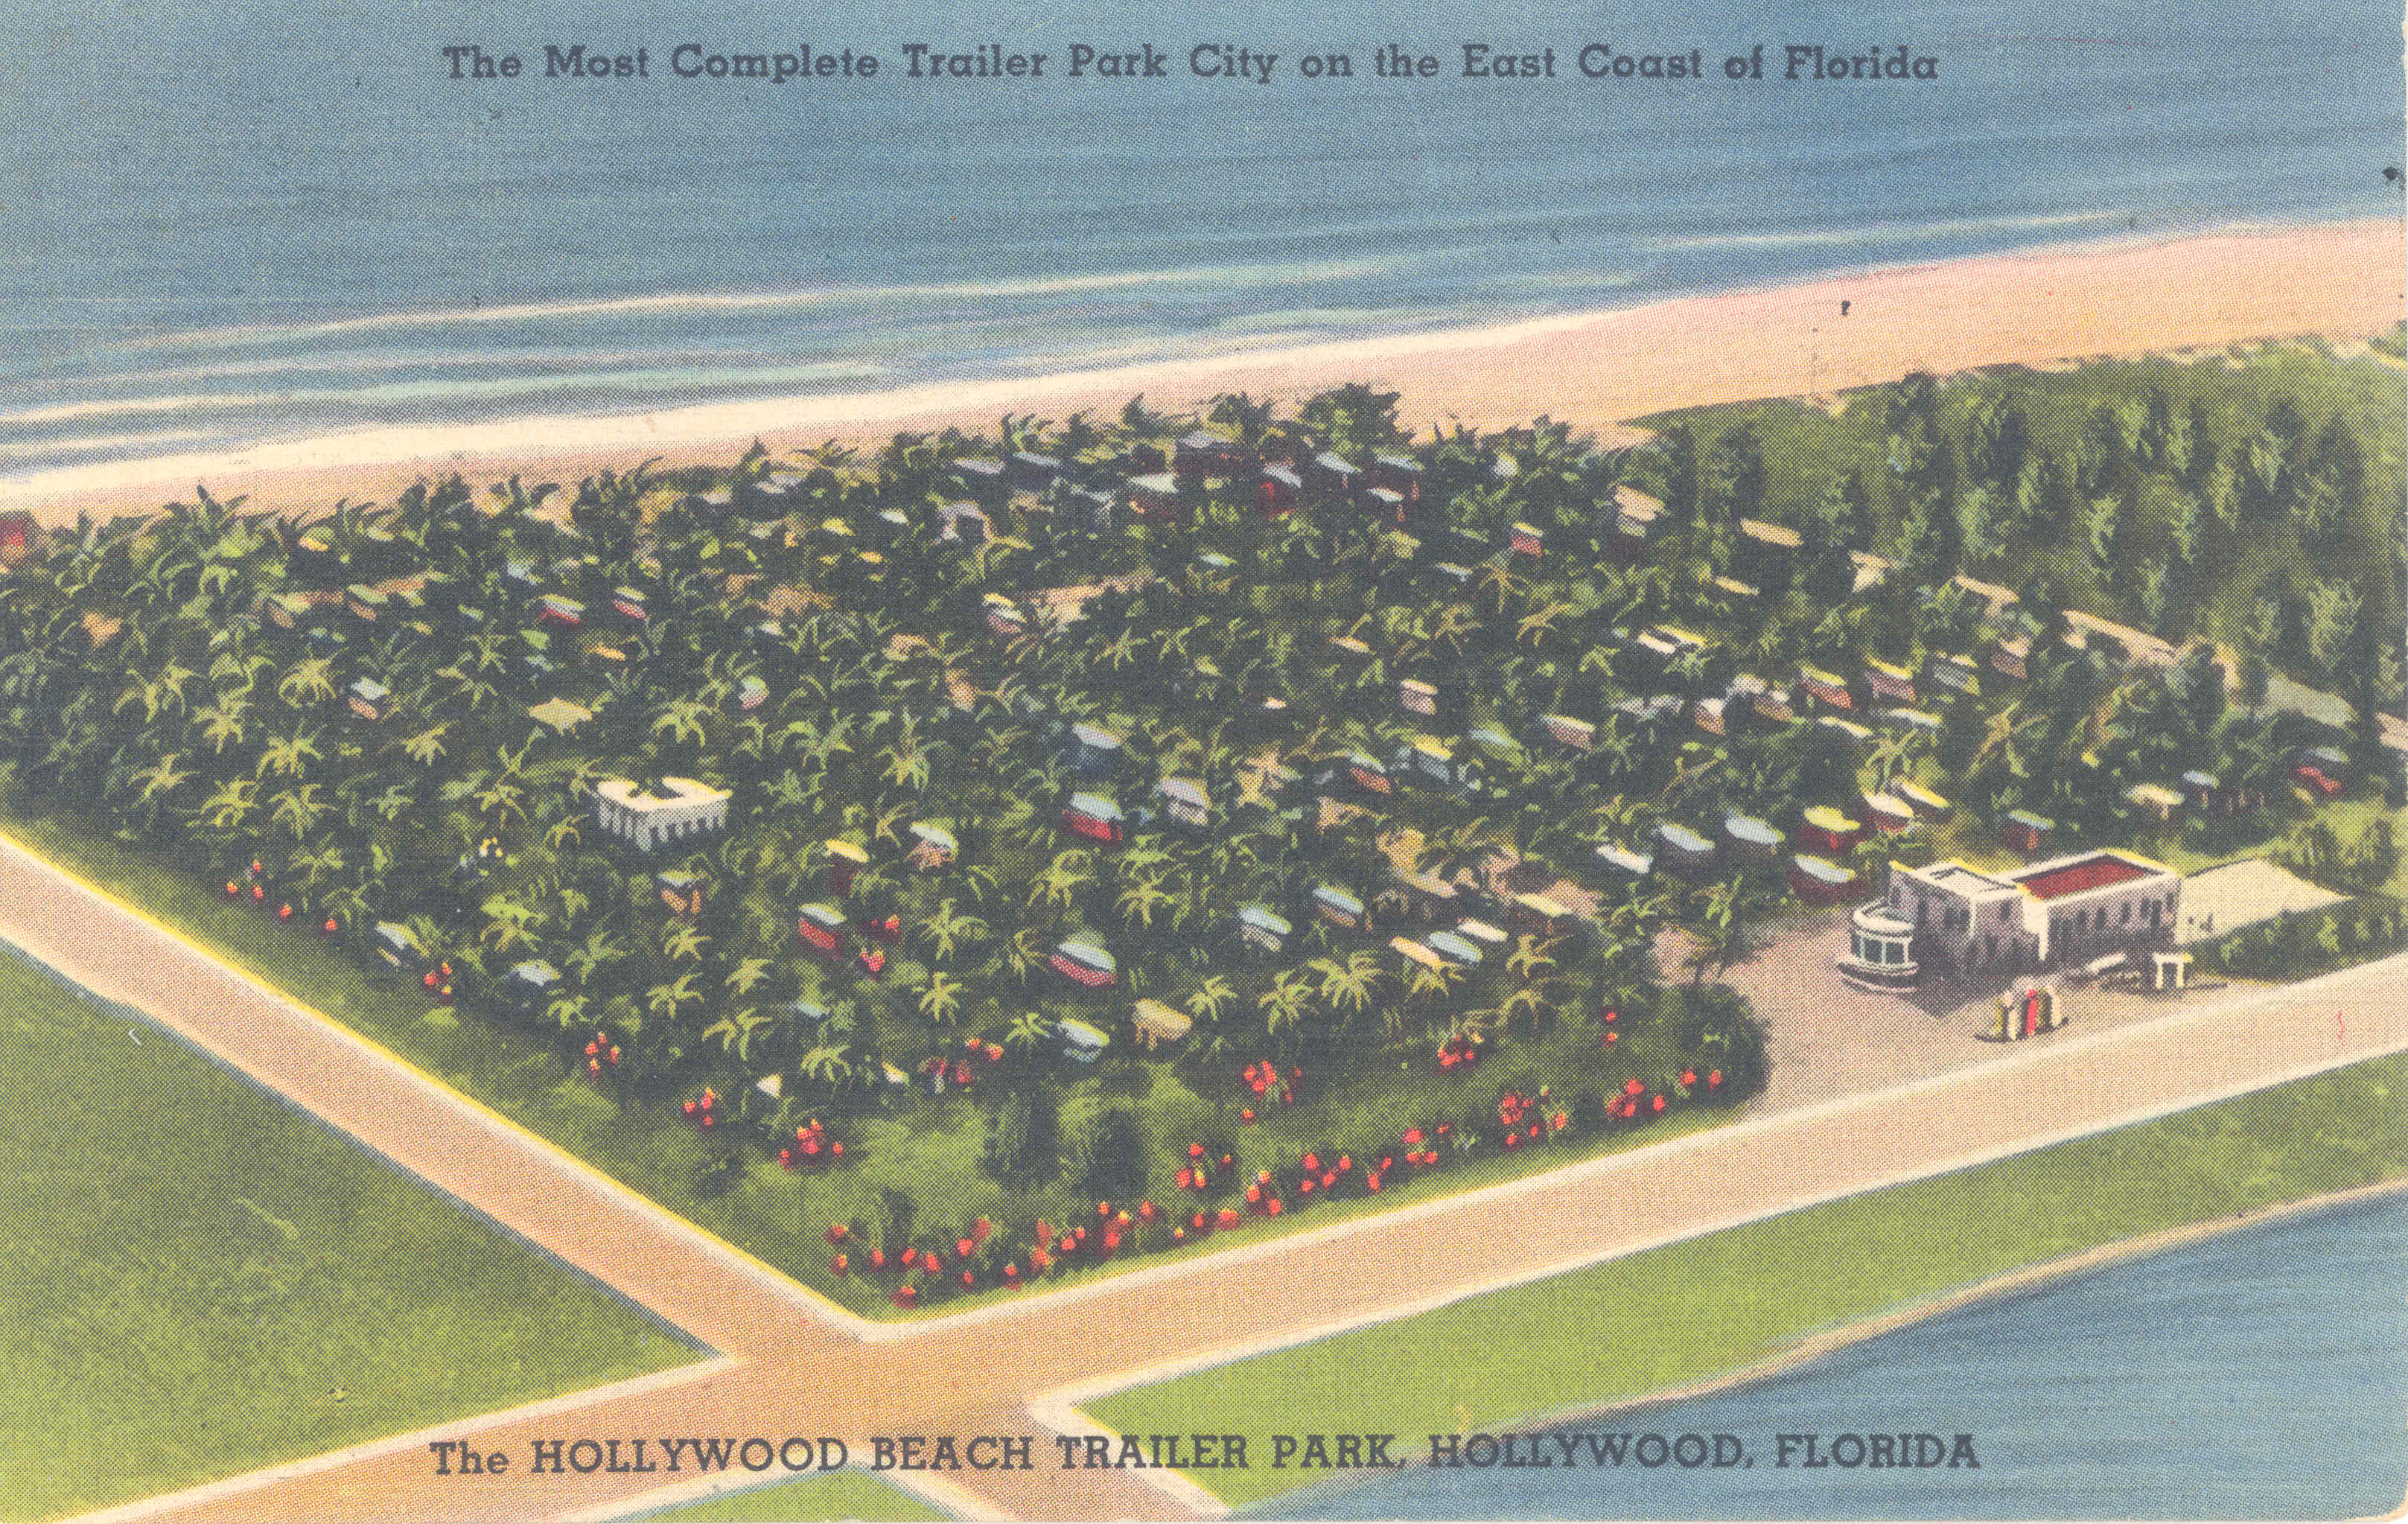 The Most Complete Trailer Park City on Fla. Coast